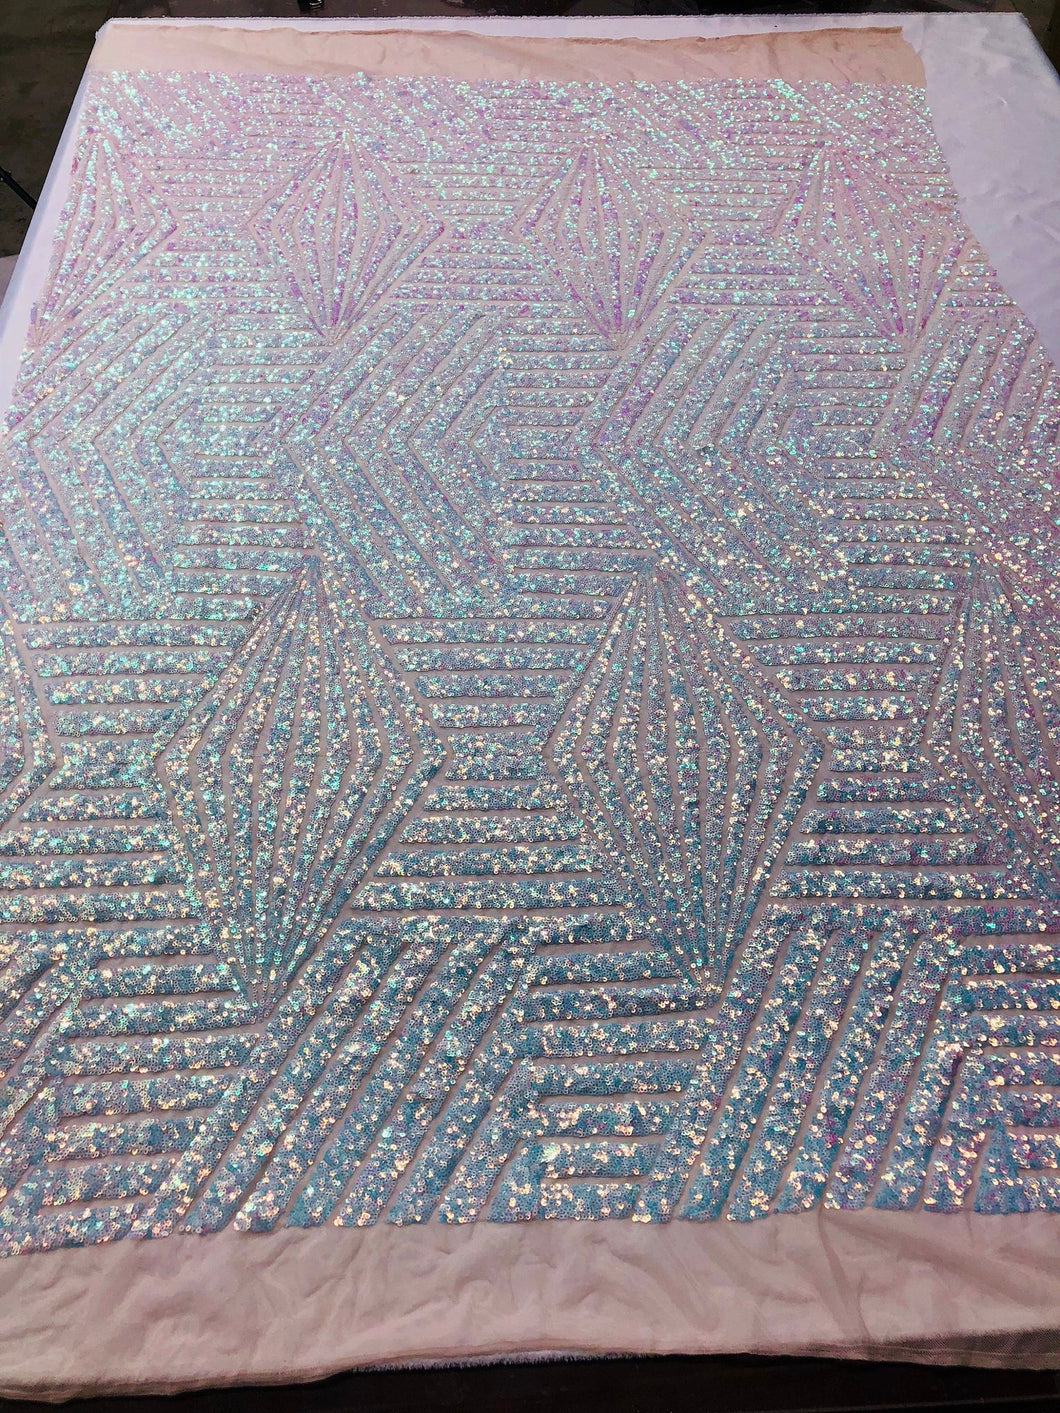 Geometric 2 Way Stretch Sequins Fabric - Iridescent Aqua Geometric Diamond Design 2 Way Stretch Mesh 52-58